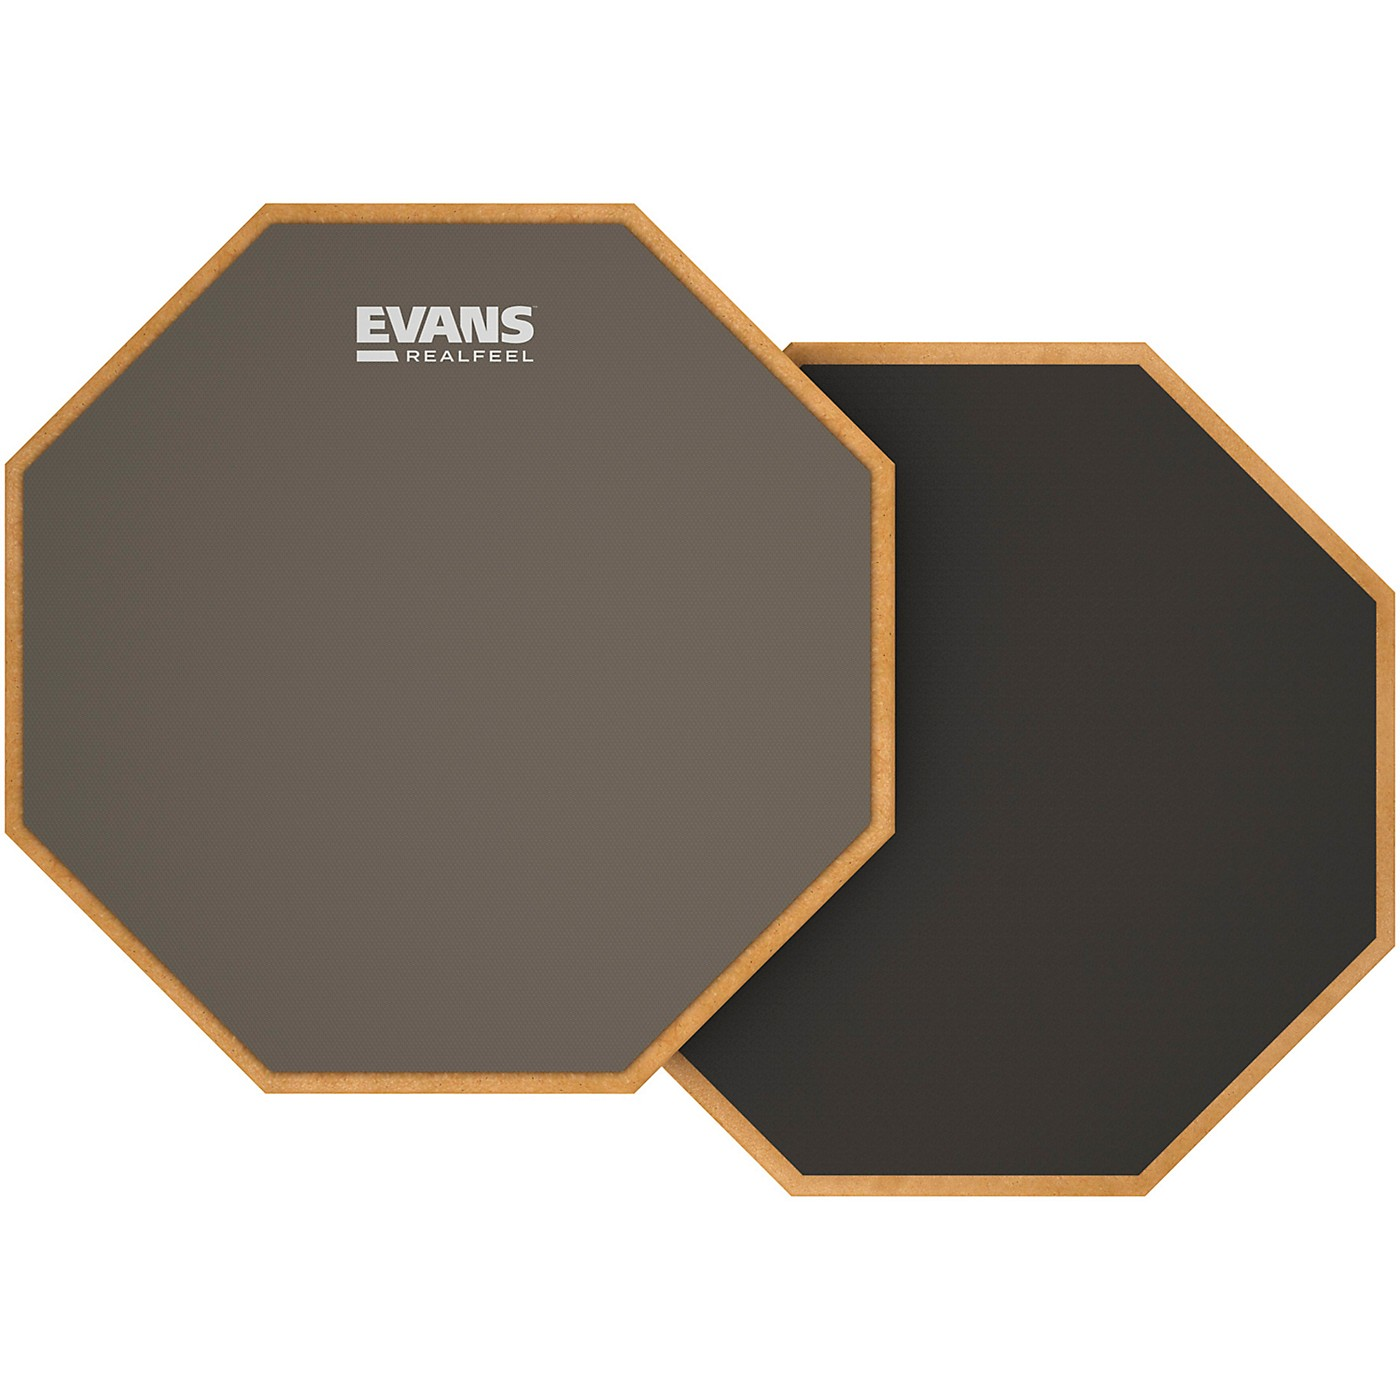 Evans RealFeel 2-Sided Speed and Workout Drum Pad thumbnail